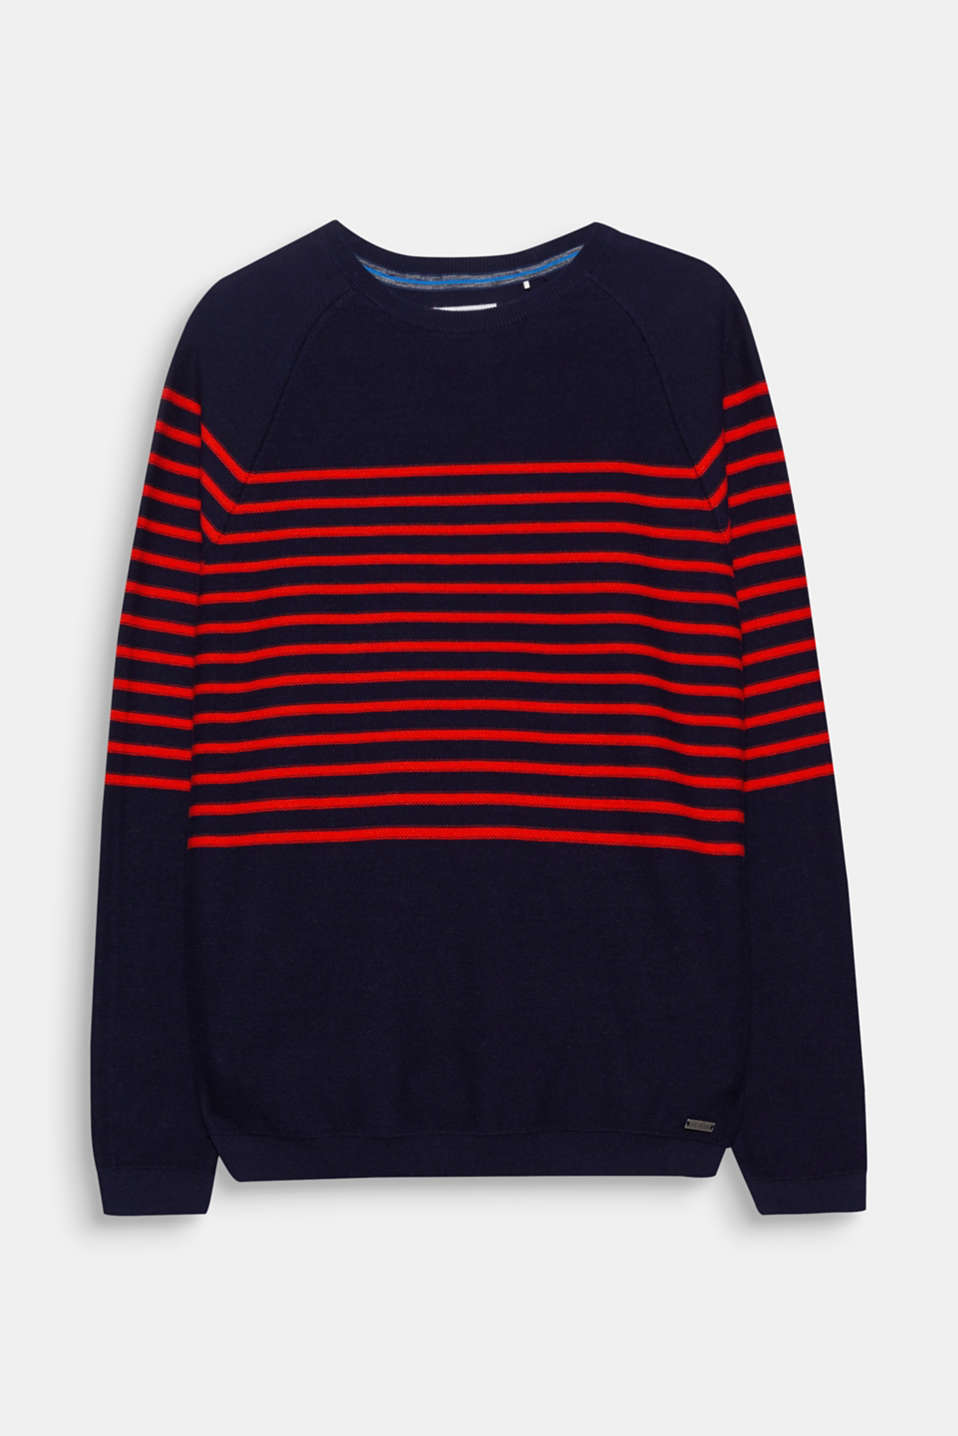 We love knitwear! The distinctive striped look makes this knitted jumper a casual style favourite.